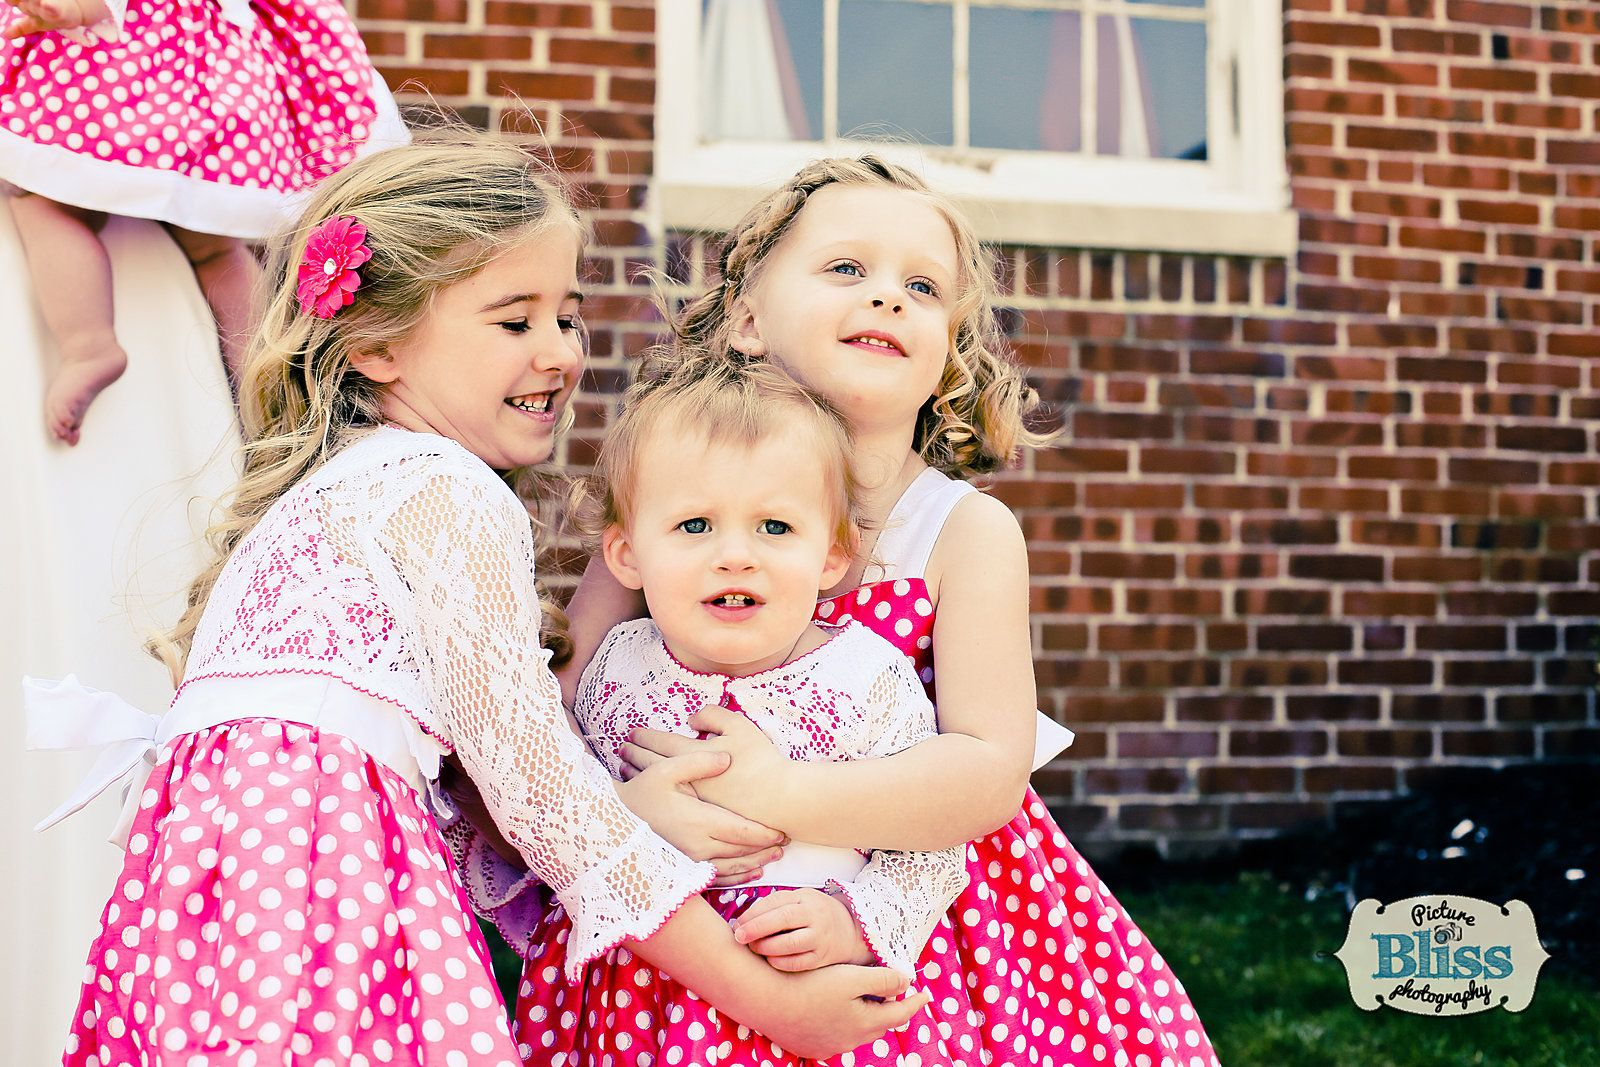 Flower girls in polka dot dresses, vintage style, adorable